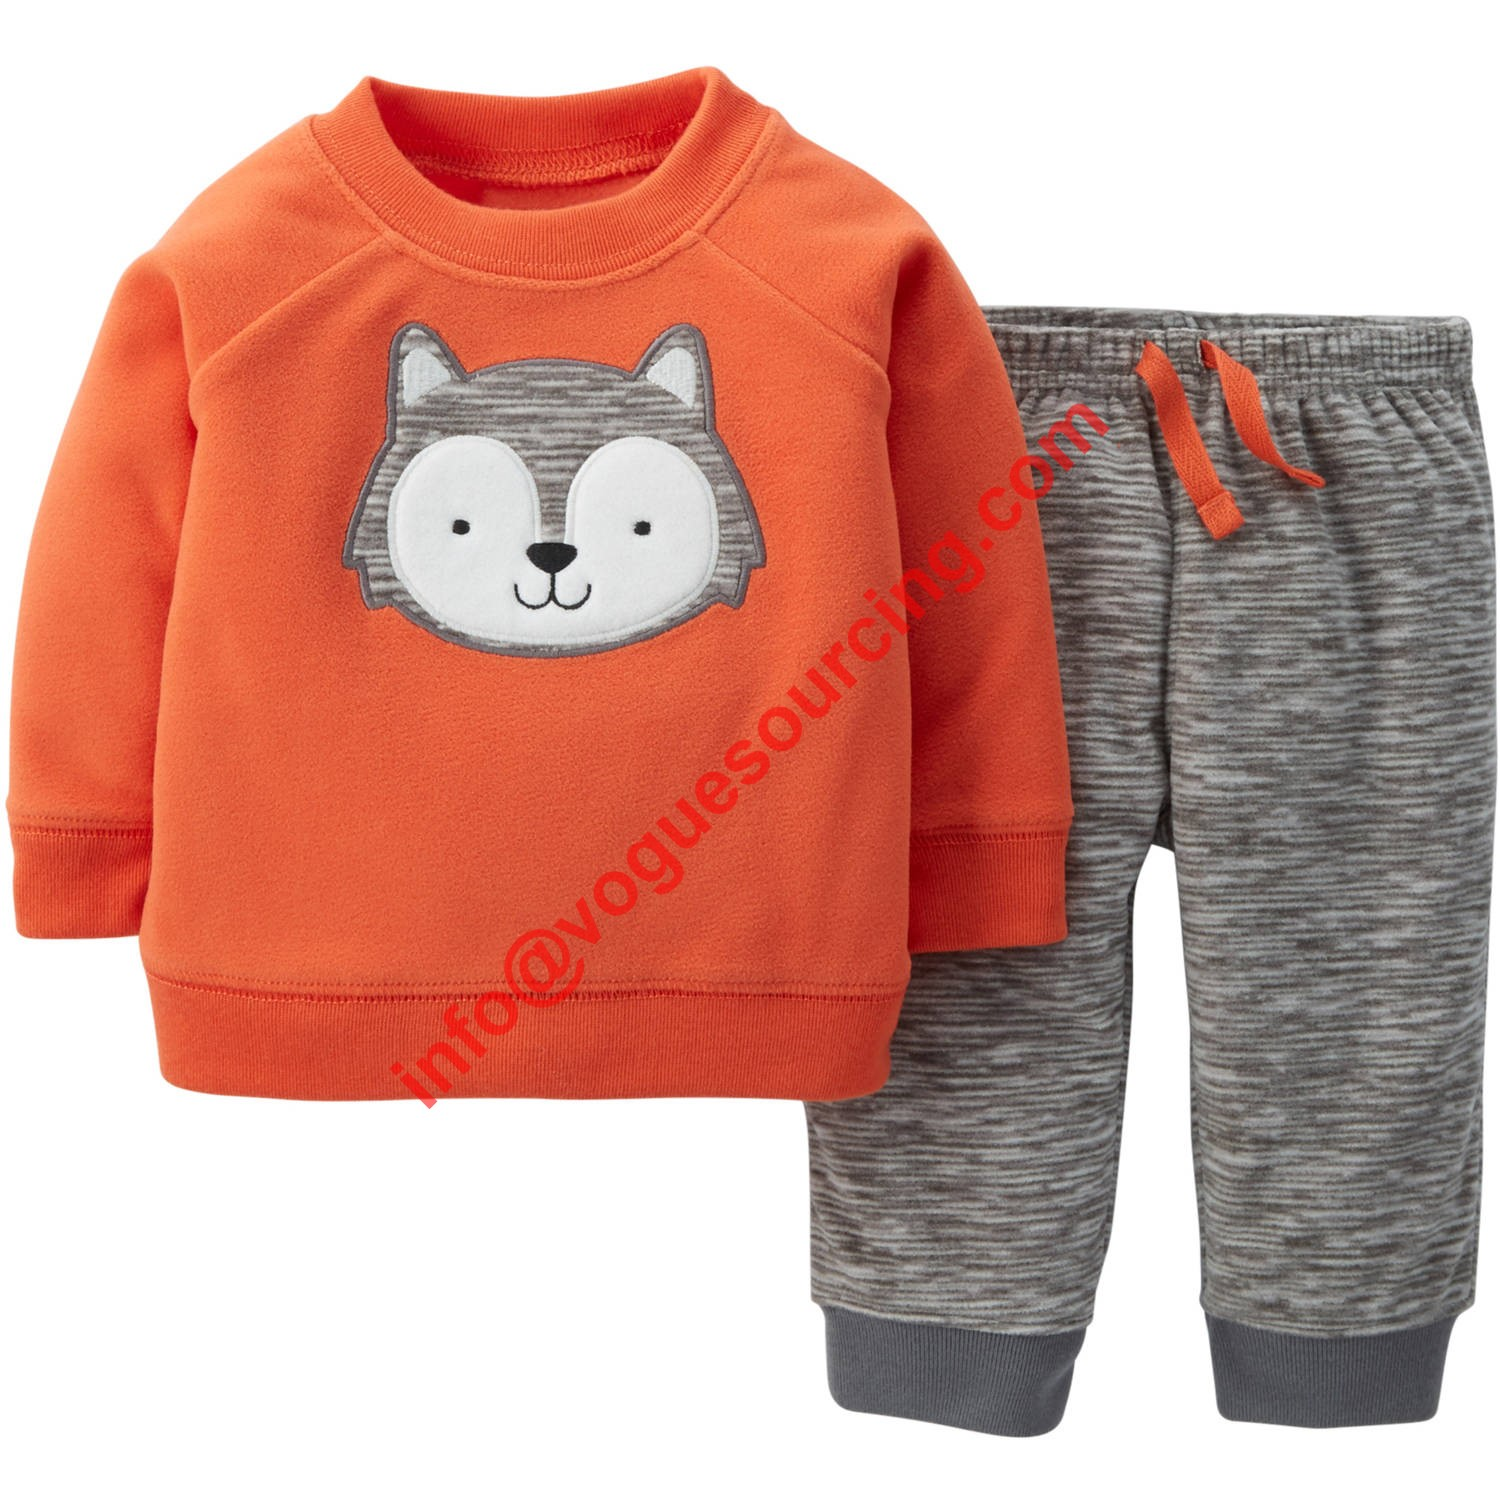 Baby Sweater Pant Clothing Set Manufacturers Exporters Vogue Sourcing